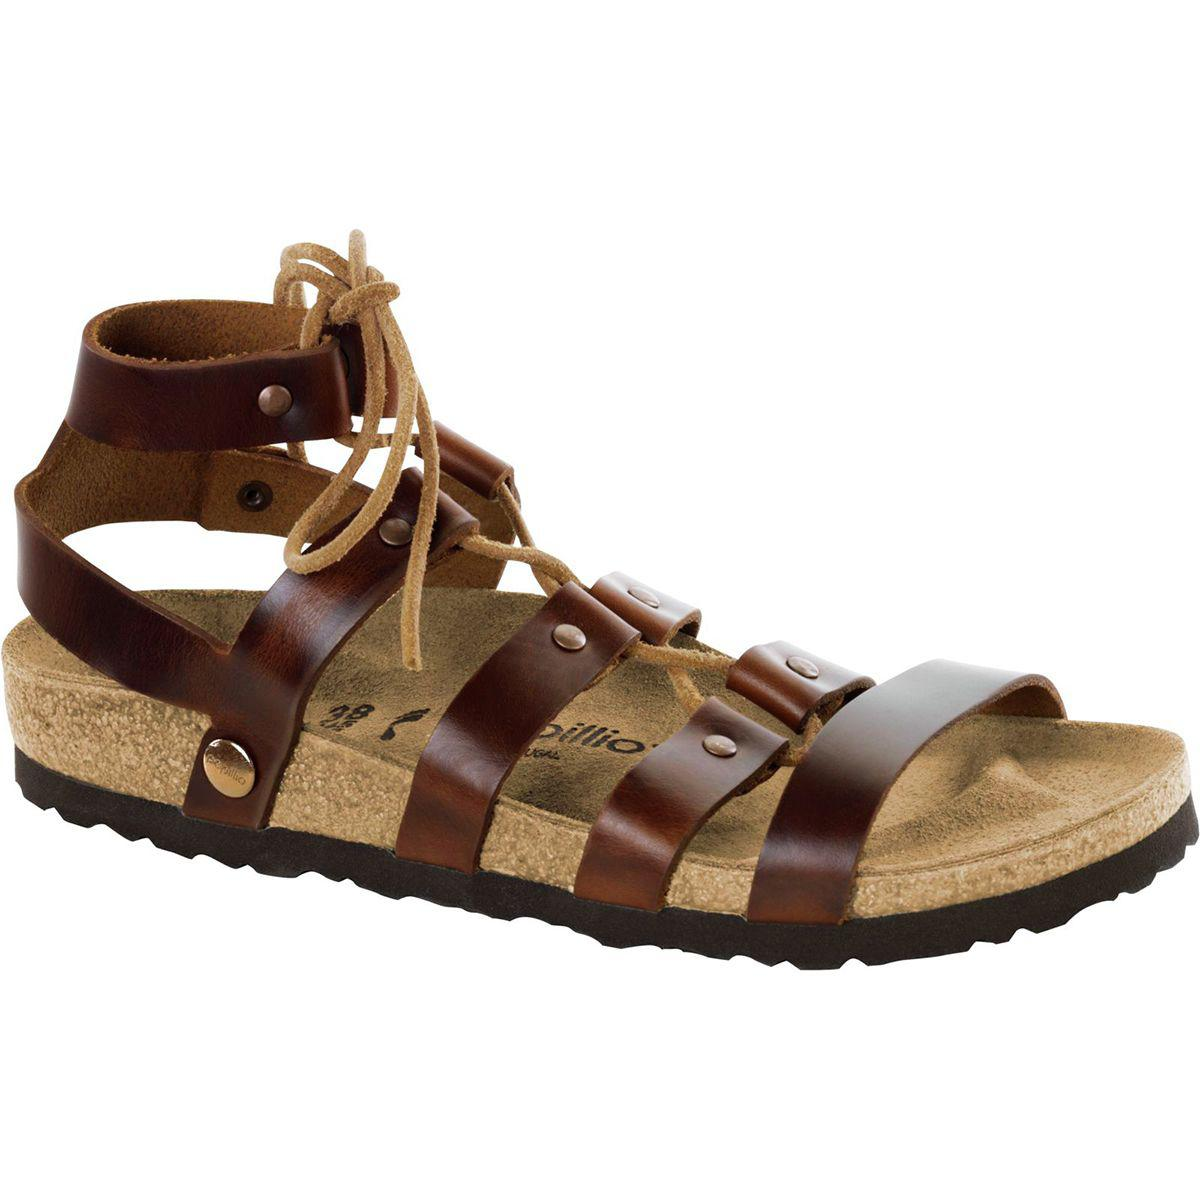 85cc4e57511 Lyst - Birkenstock Cleo Leather Narrow Sandal in Brown